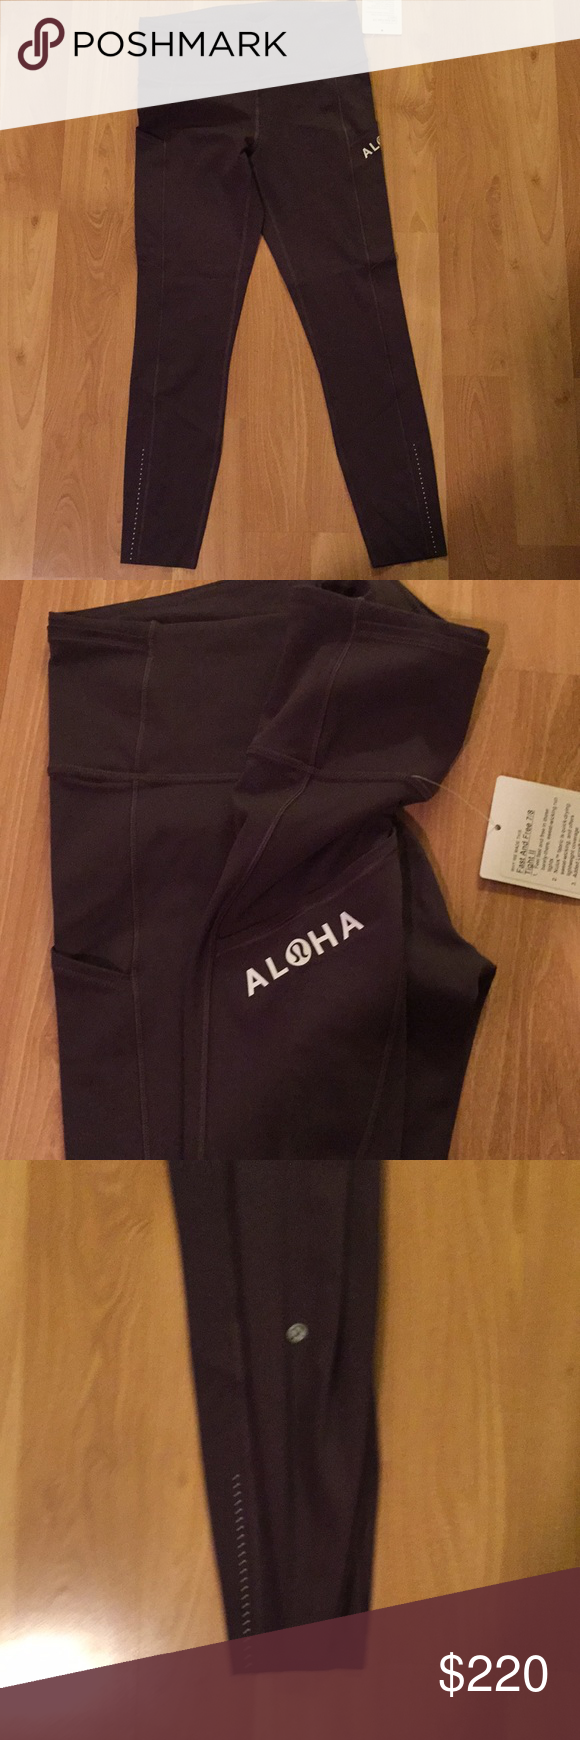 4d2bce7da1a Exclusive Hawaii Aloha edition Lululemon Only sold in Hawaii ...